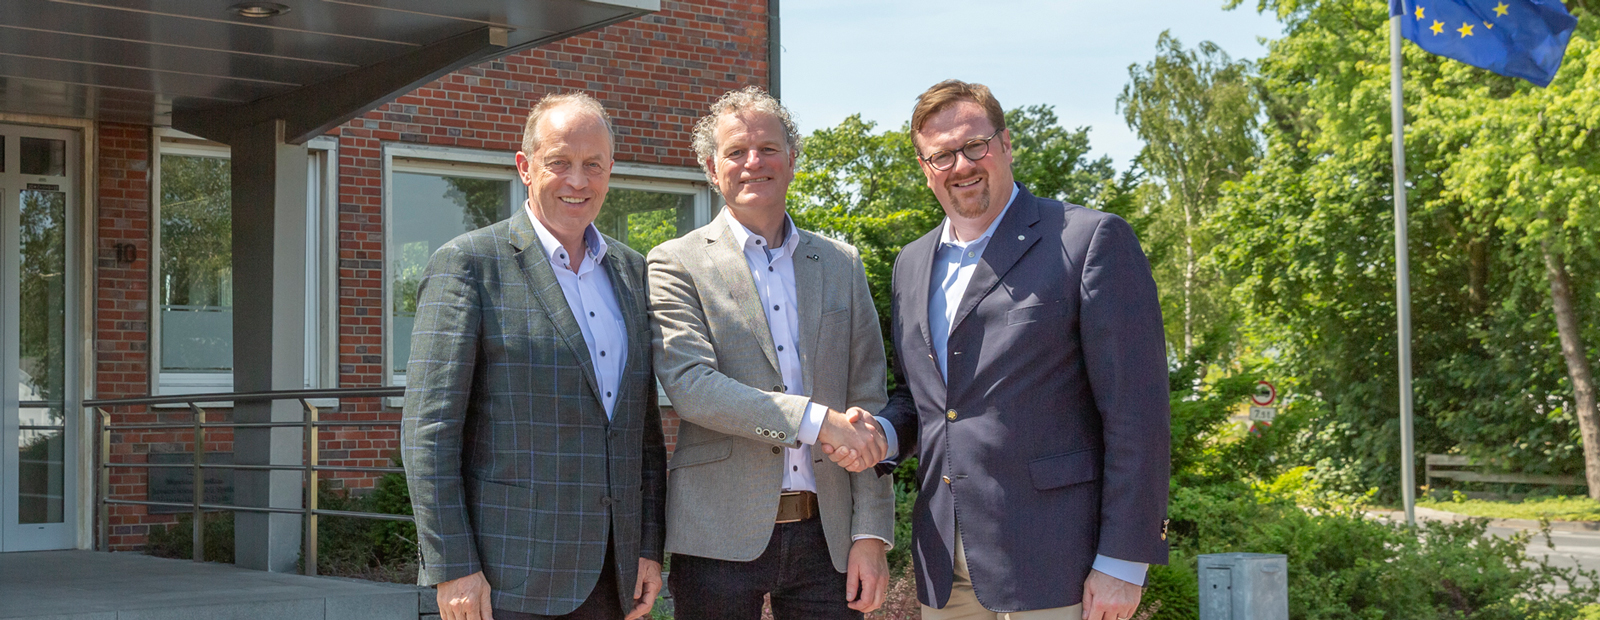 Knapen and Krone join forces